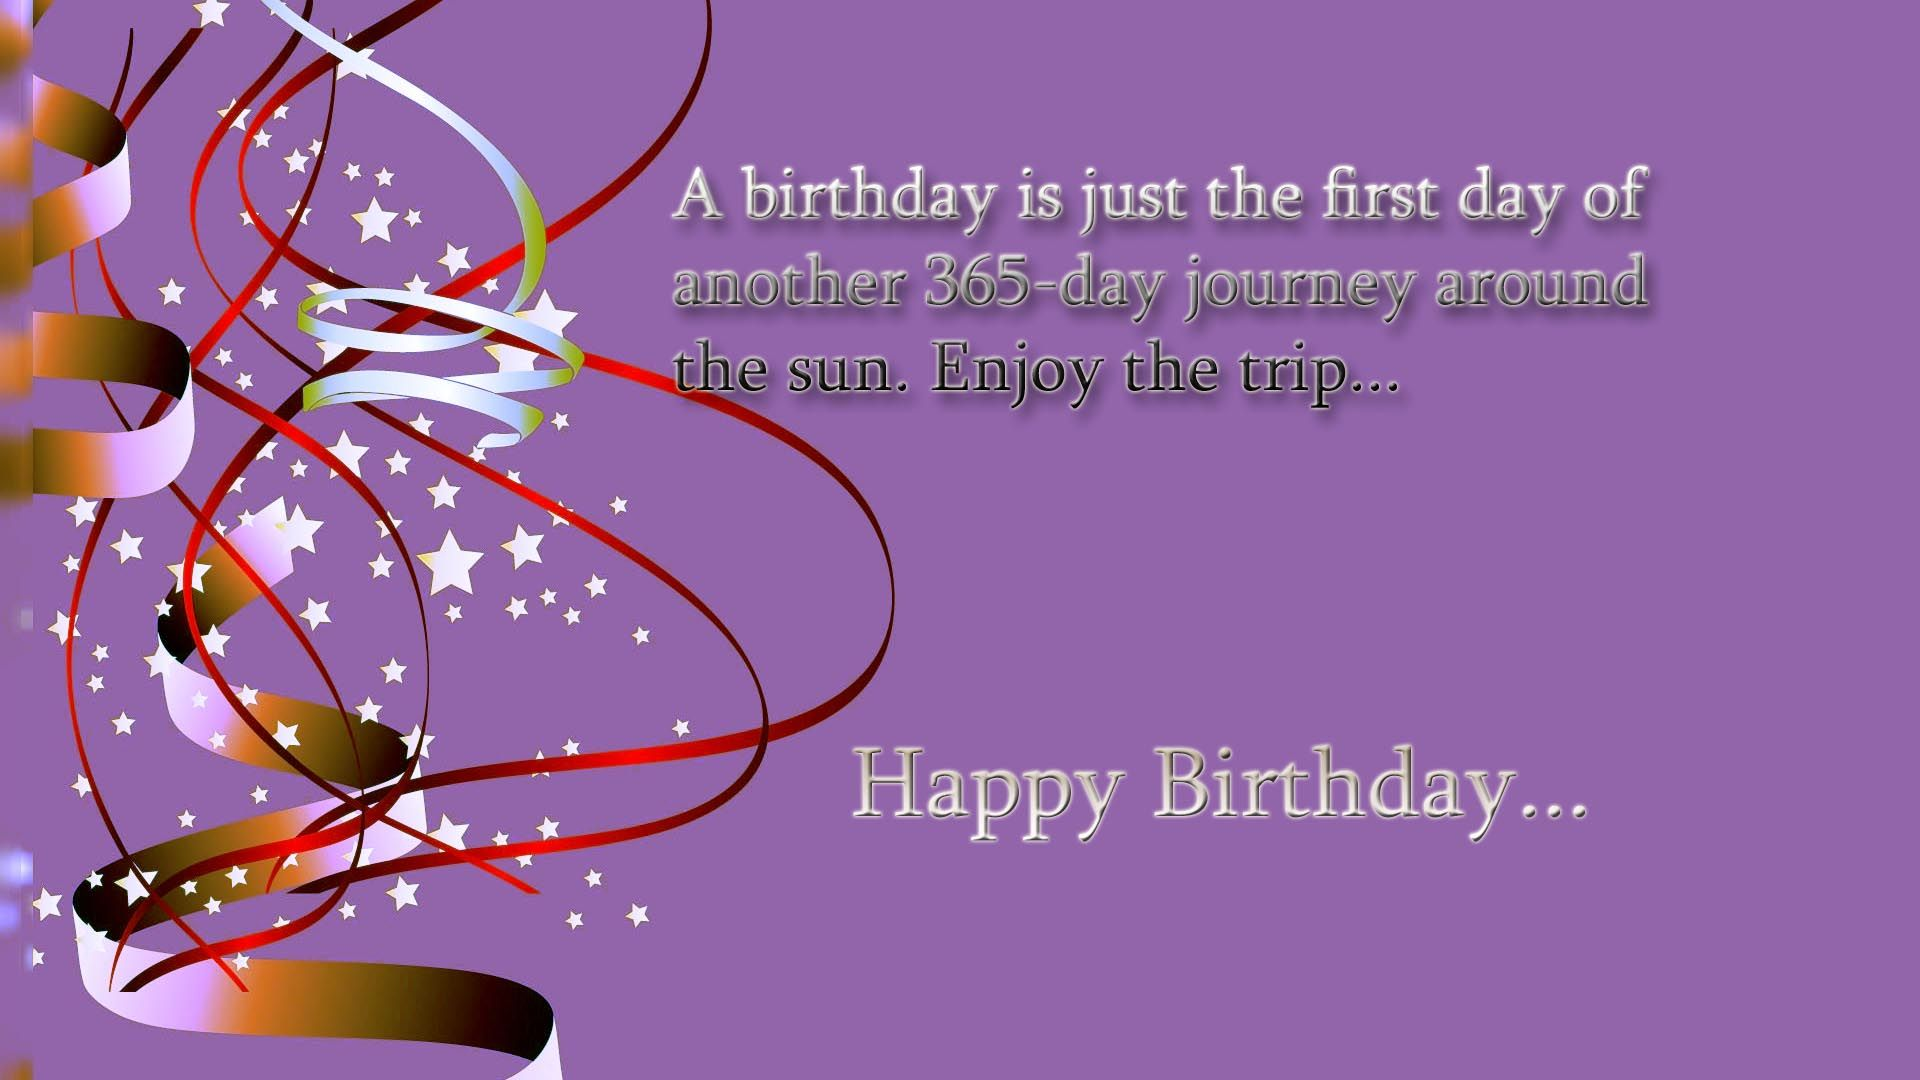 Bhappyb bbirthdayb bquotesb on photo amazing top happy birthday wishes cards pictures wallpaper kristyandbryce Choice Image